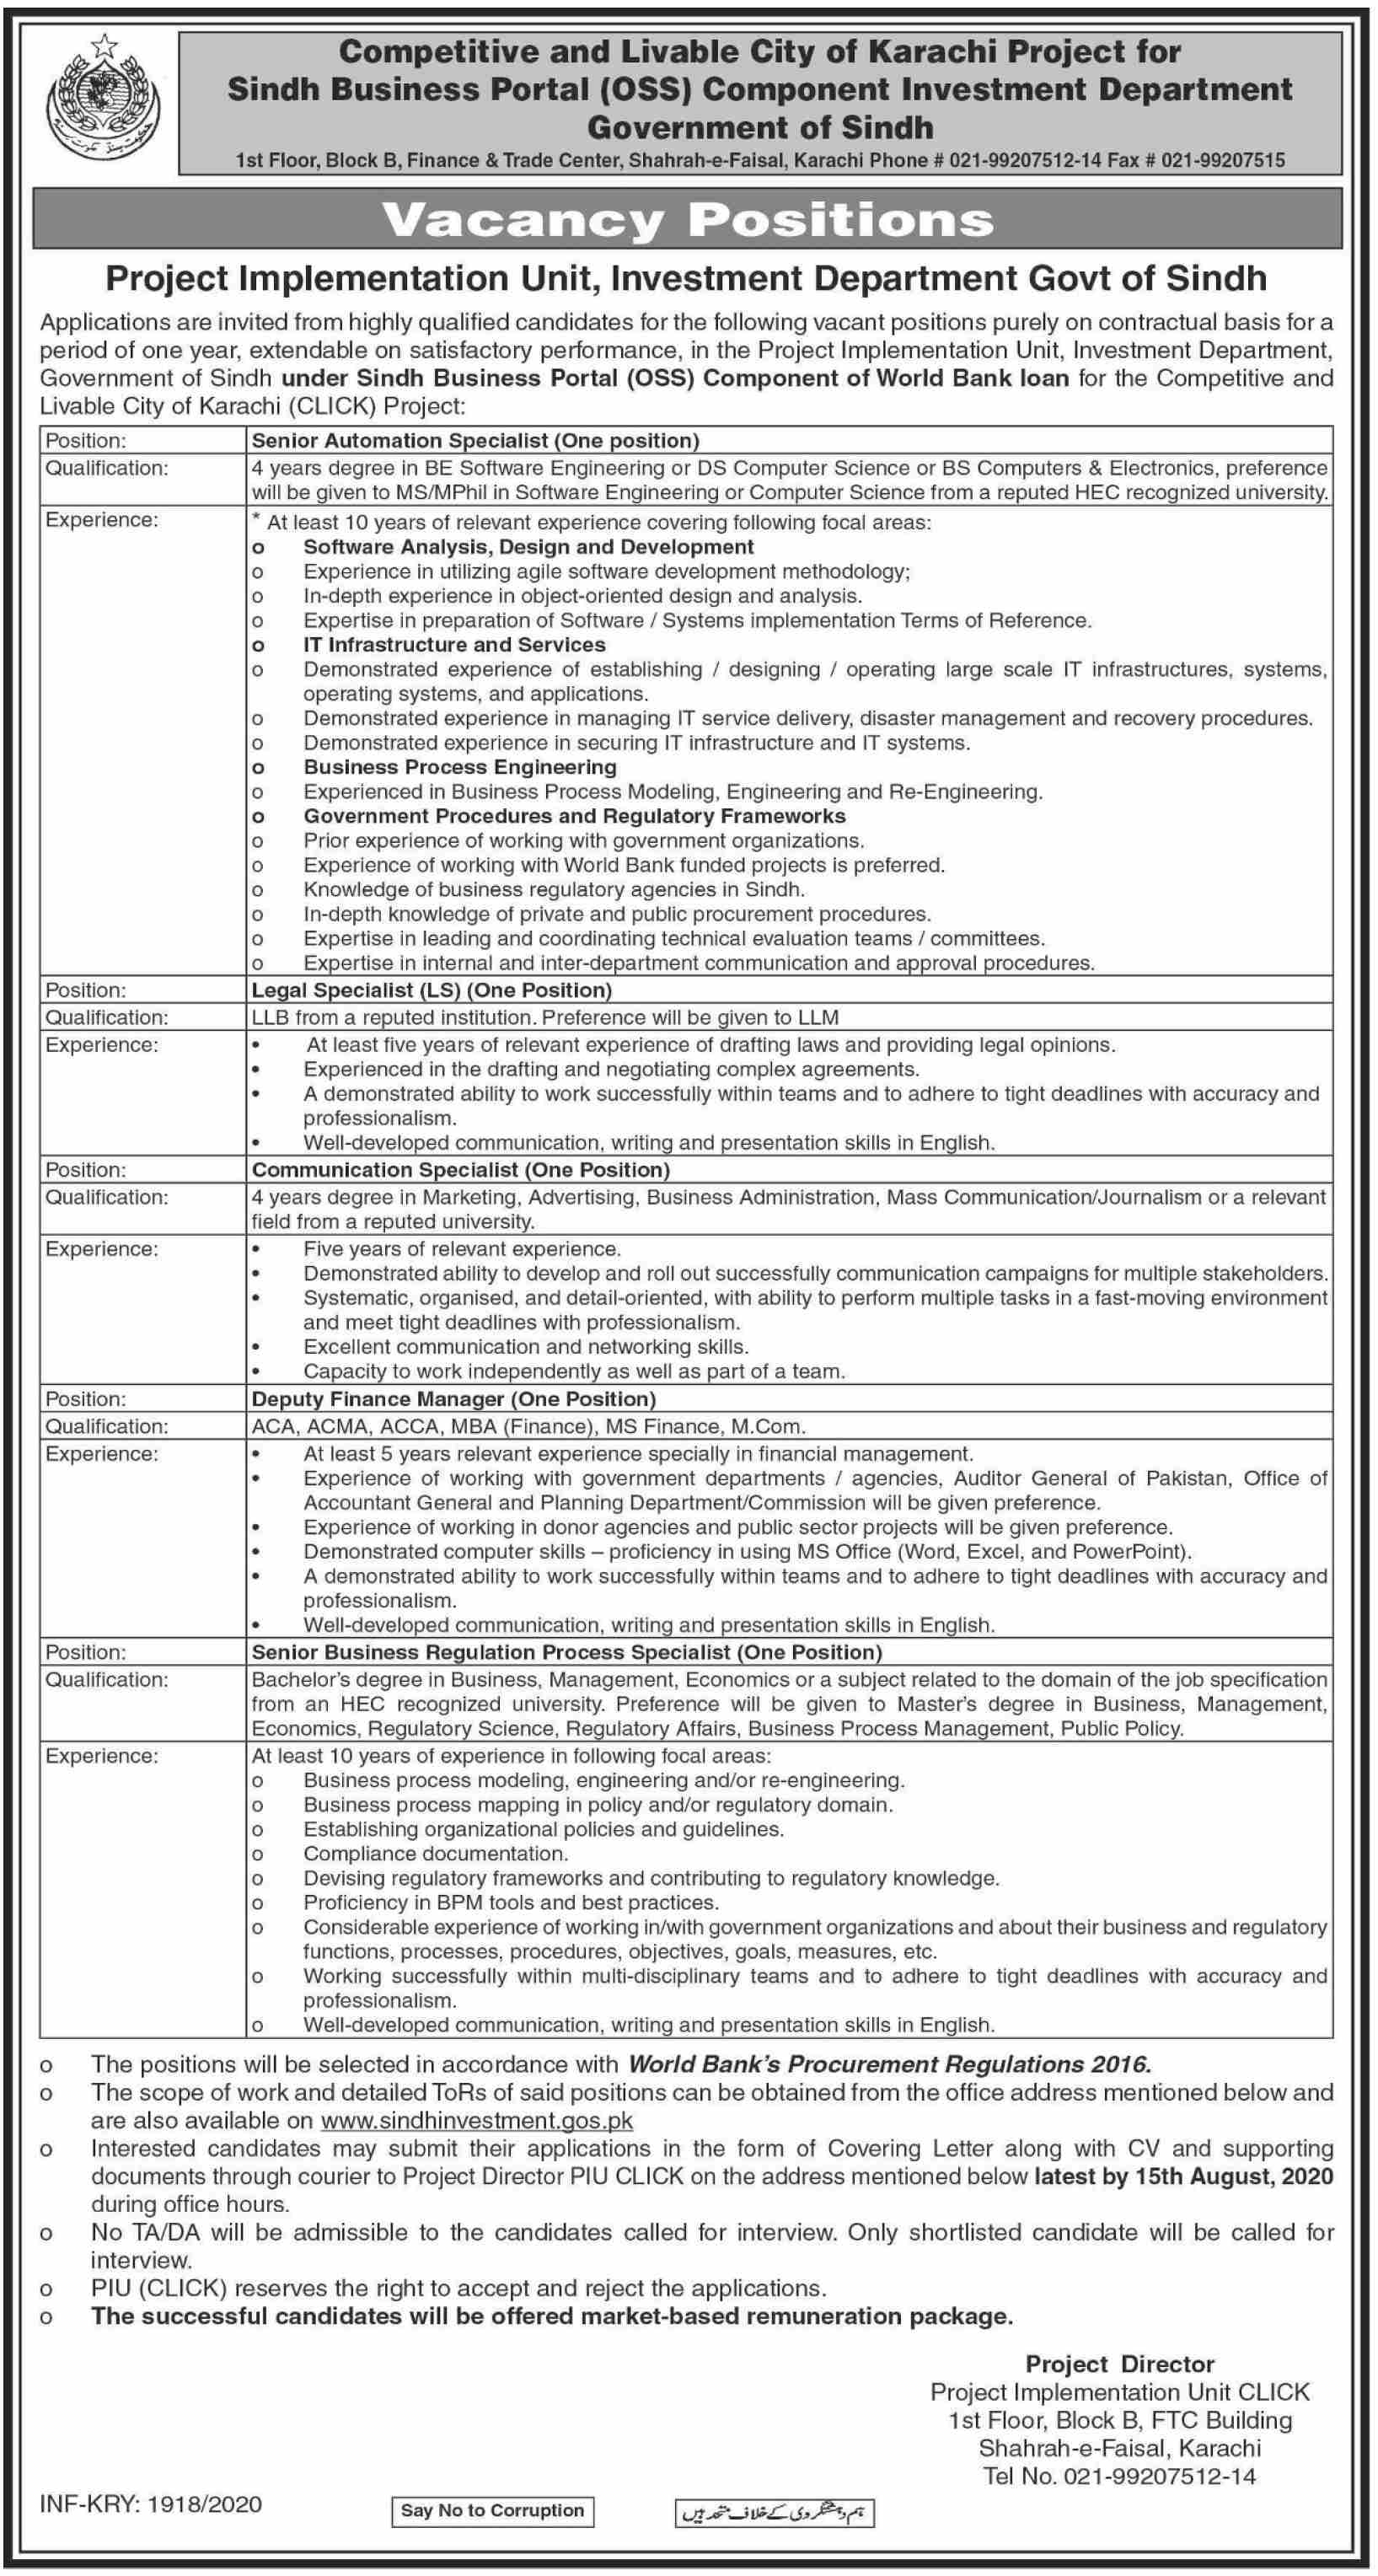 Deputy Finance Manager jobs in Karachi at Investment Department